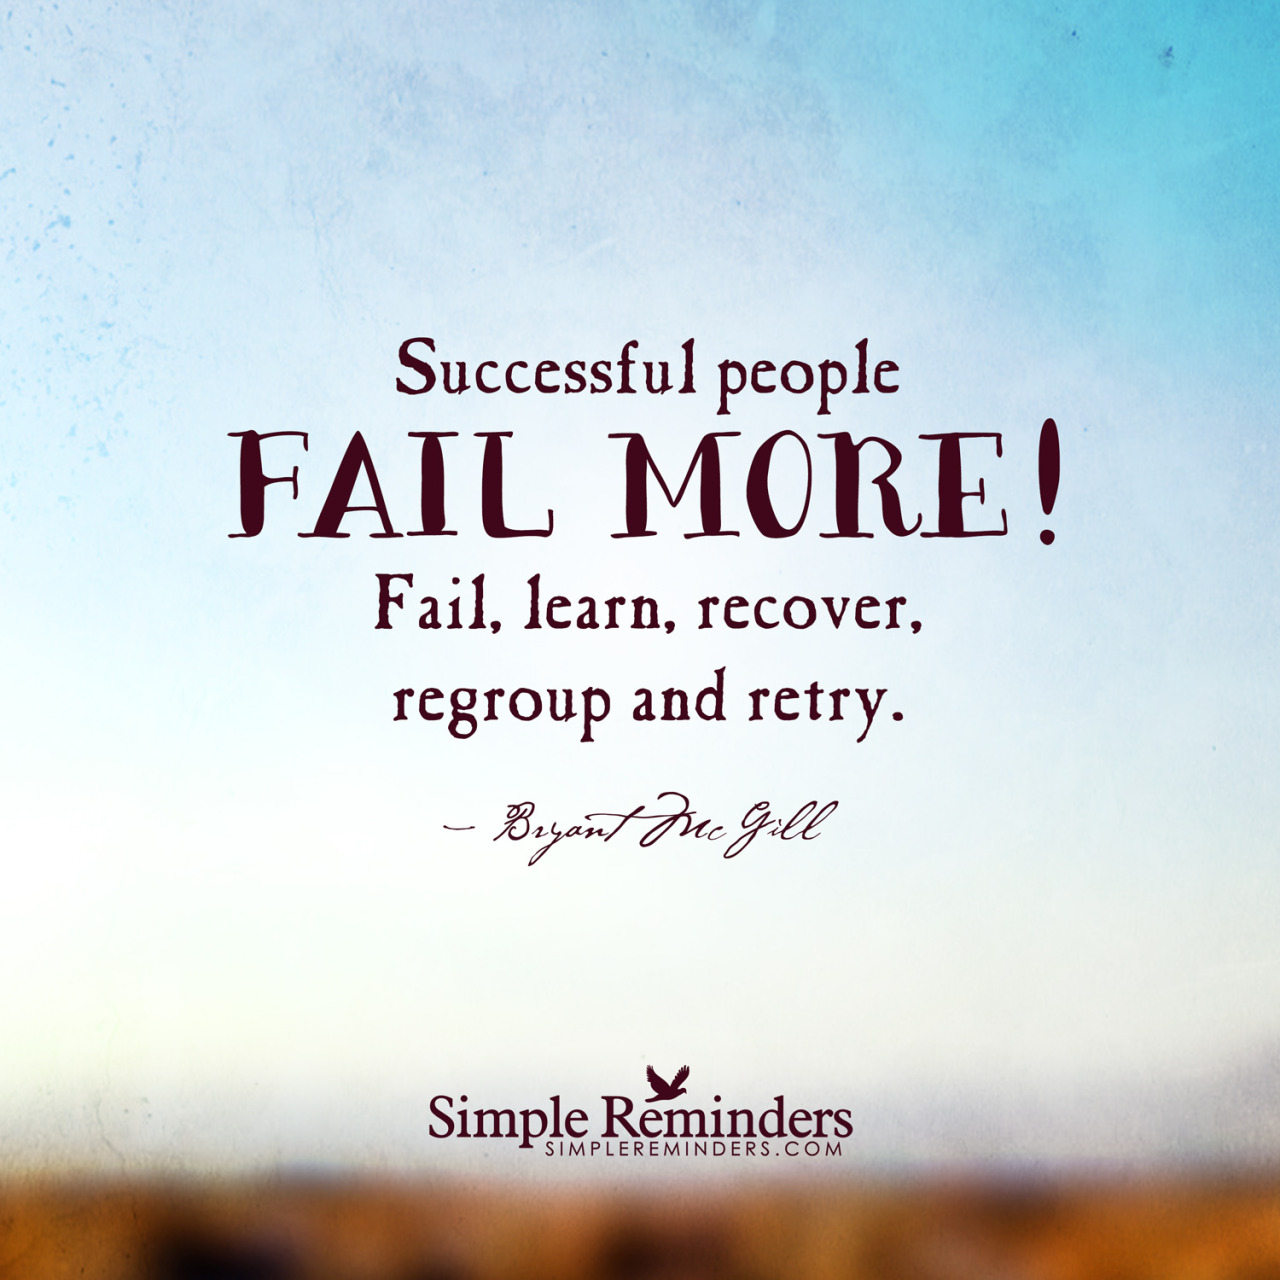 regroup successful fail learn retry quotes quote recover bryant mcgill cost motivation motivational simple reminders lot simplereminders quotlr adoption counting